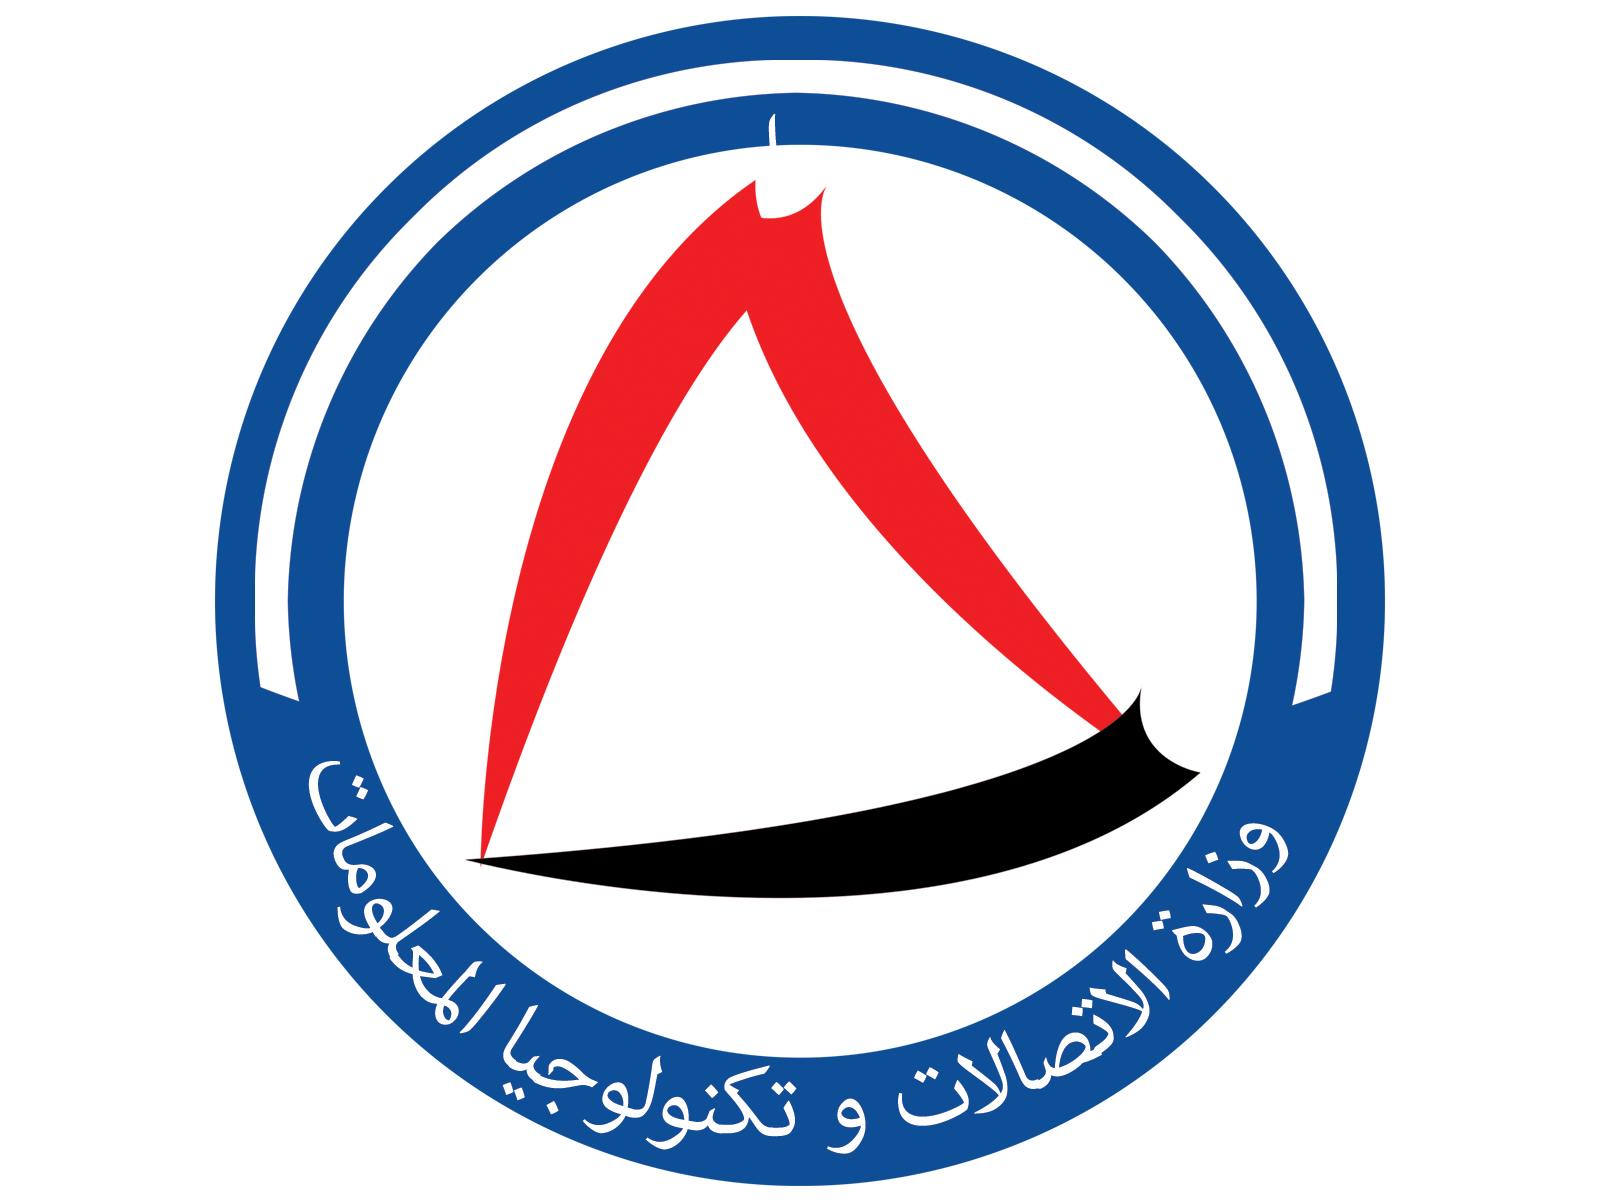 Ministry of communications and information technology egypt brief from client biocorpaavc Images